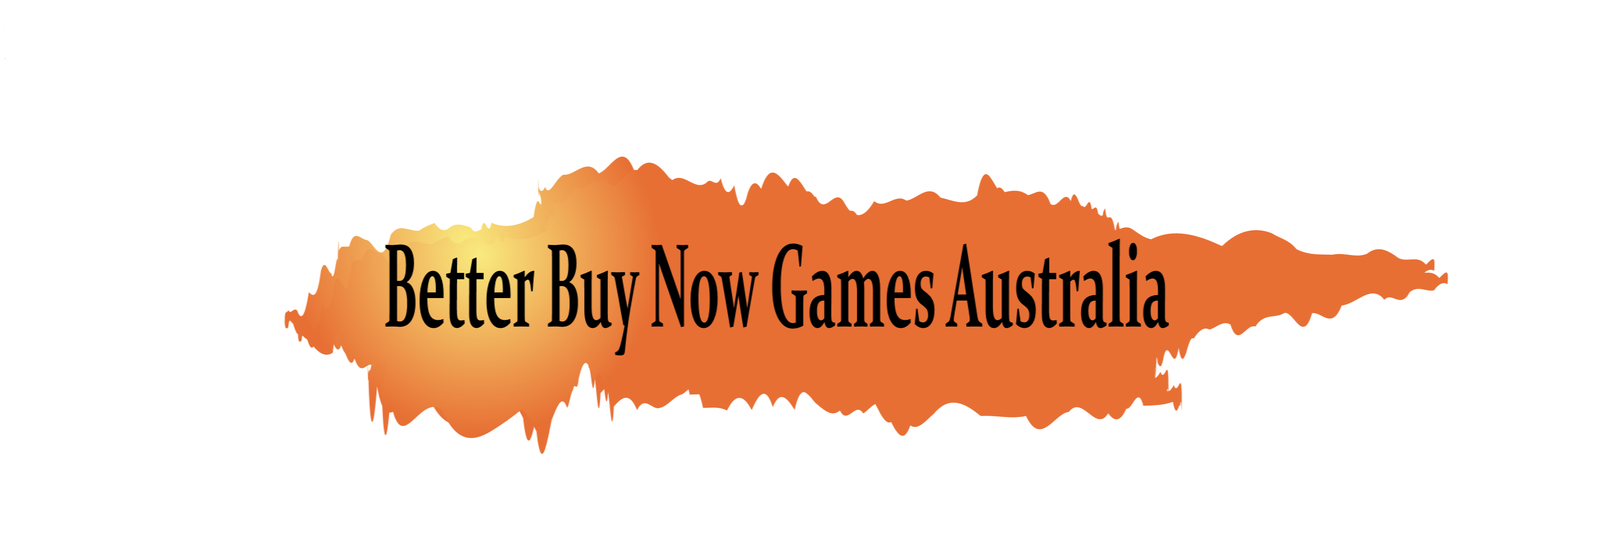 Better Buy Now Games Australia